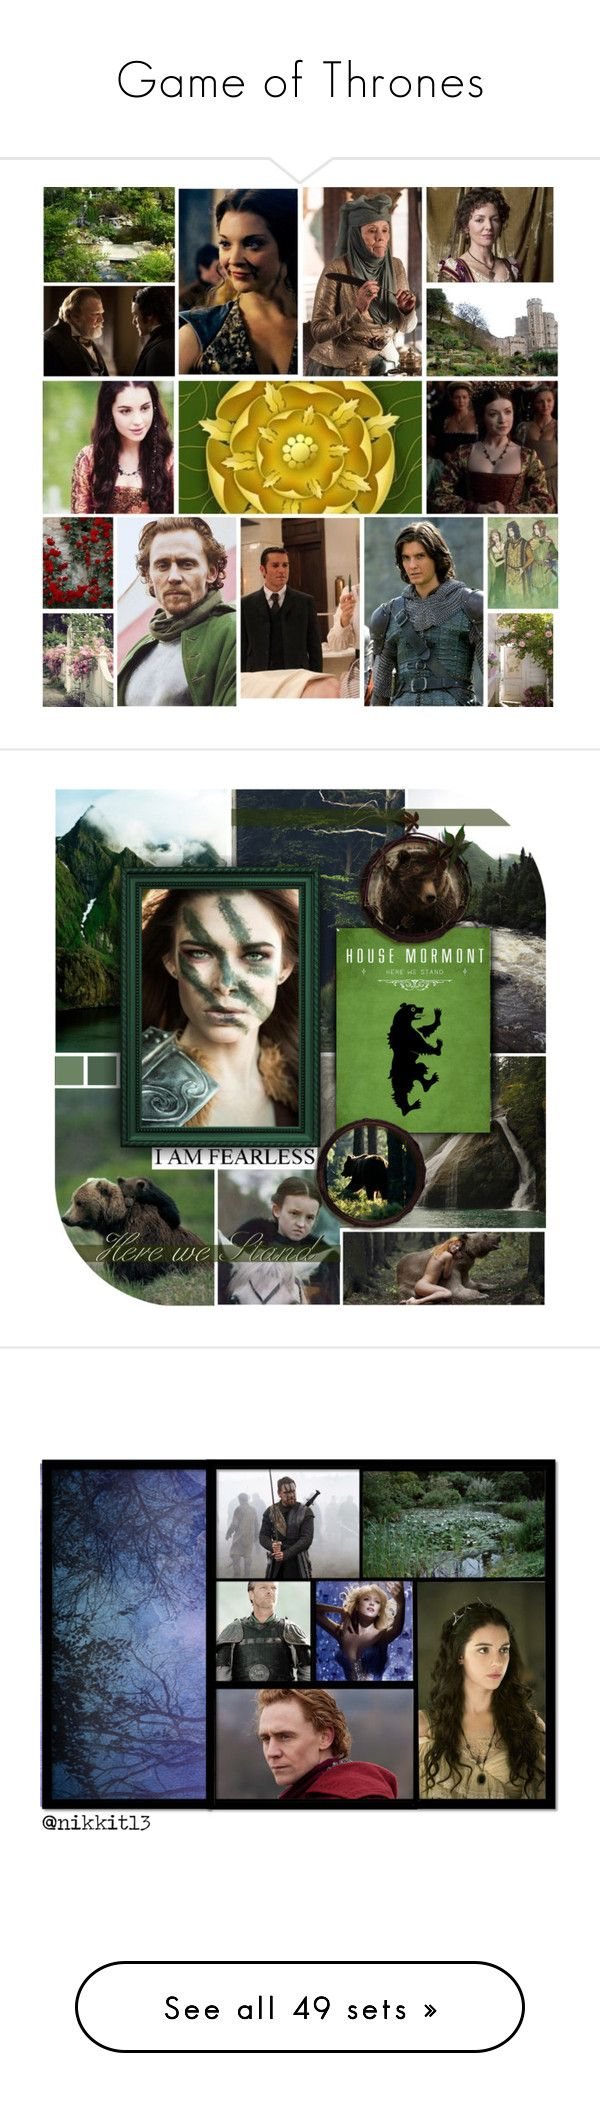 """Game of Thrones"" by danicathorne on Polyvore featuring arte, bridget regan, game of thrones, a song of ice and fire, dacey mormont, Envi, interior, interiors, interior design e Casa"